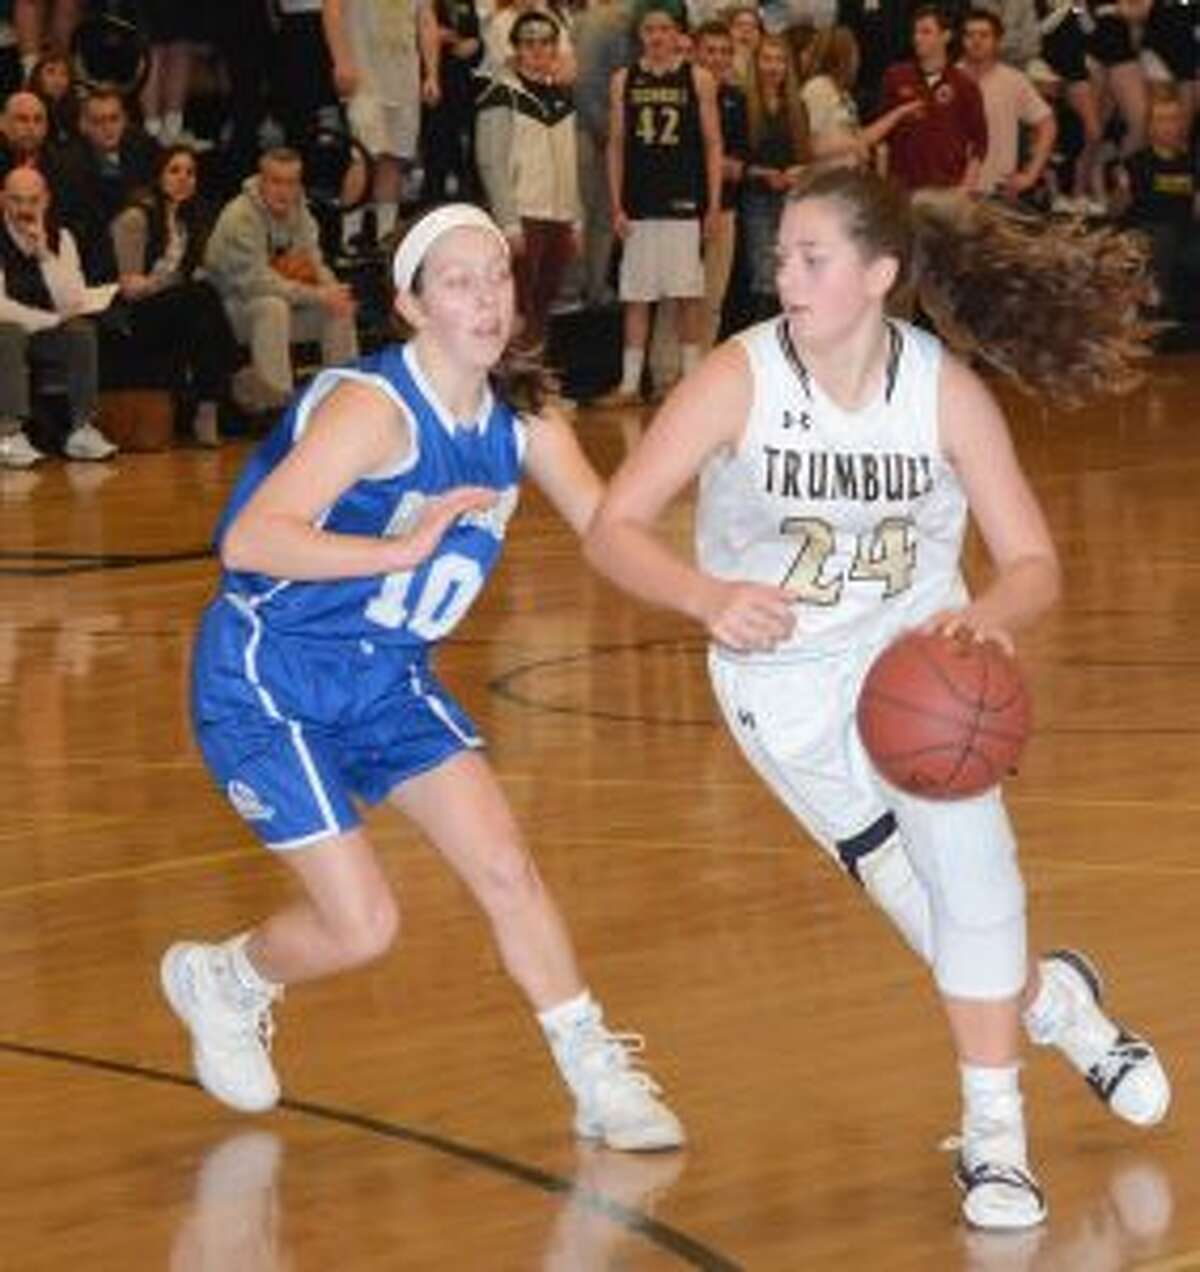 Cassi Barbato drives the ball to the basket.